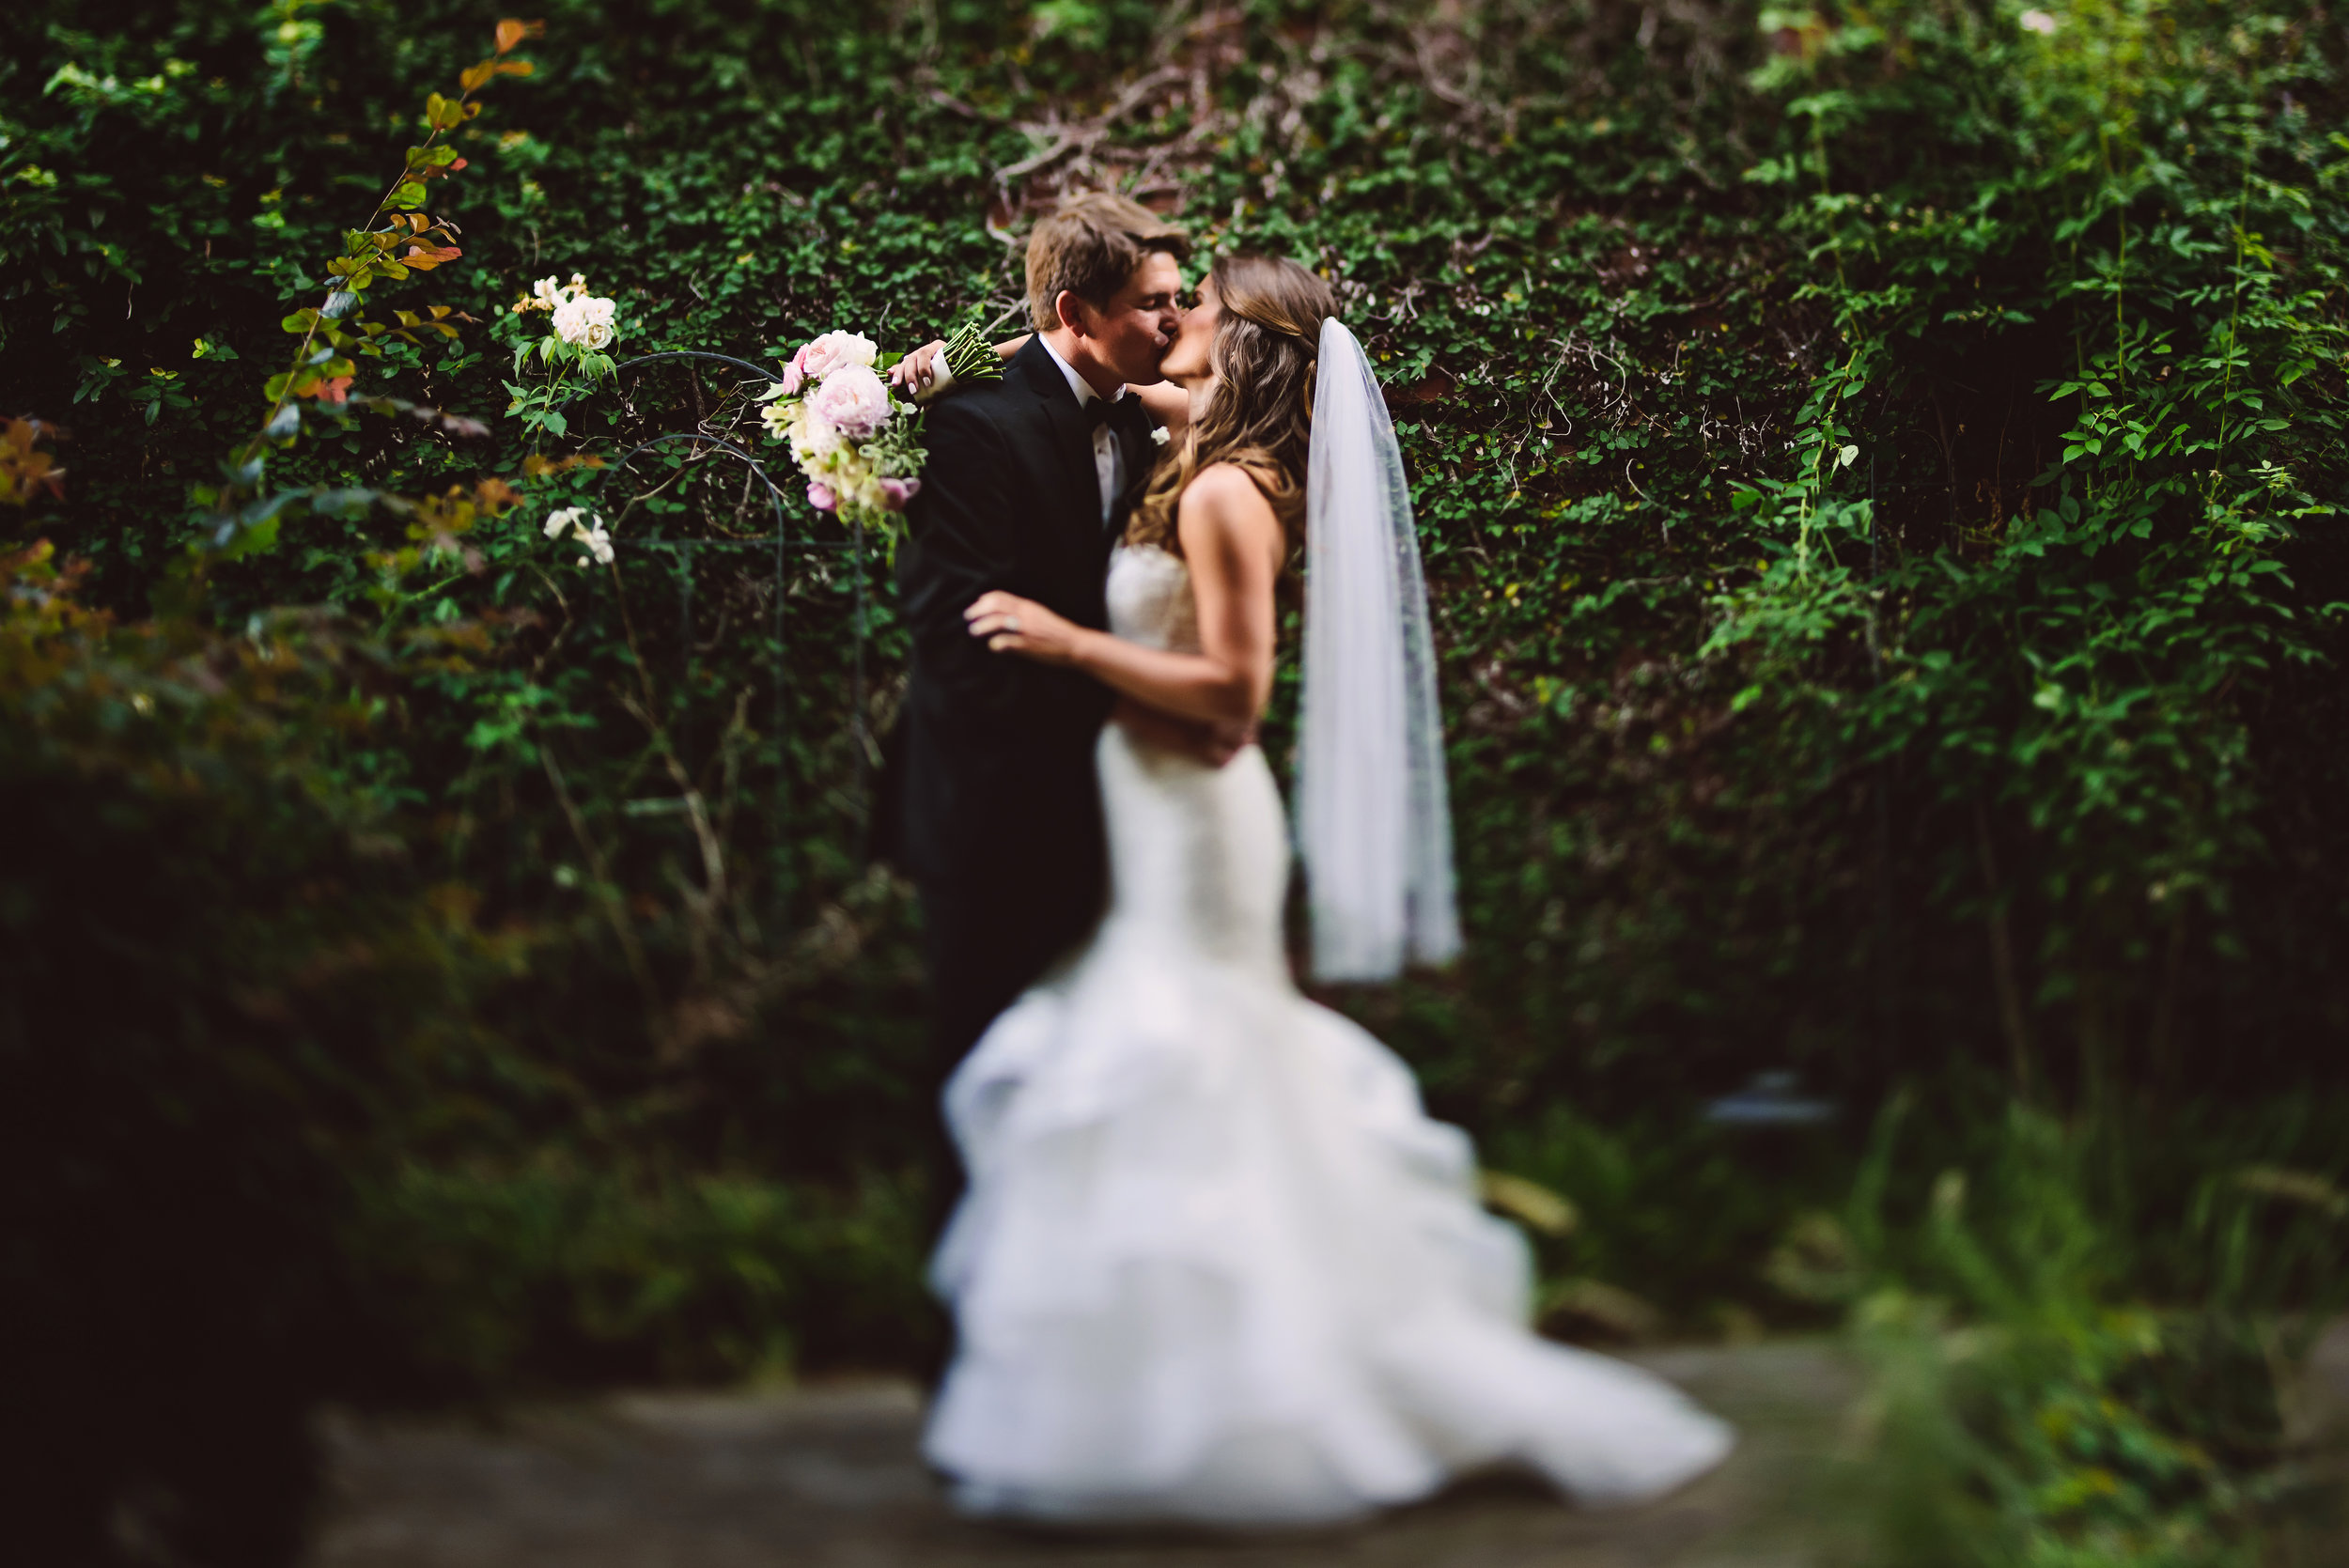 pink ivory and greenery bridal bouquet, bouquet, Monique Lhuillier wedding dress, Lace wedding dress, Bridal fashion, Wedding style, Wedding hair style, Bridal hair style, Half up half down hair style, Mint Museum Uptown wedding in Charlotte, North Carolina by The Graceful Host